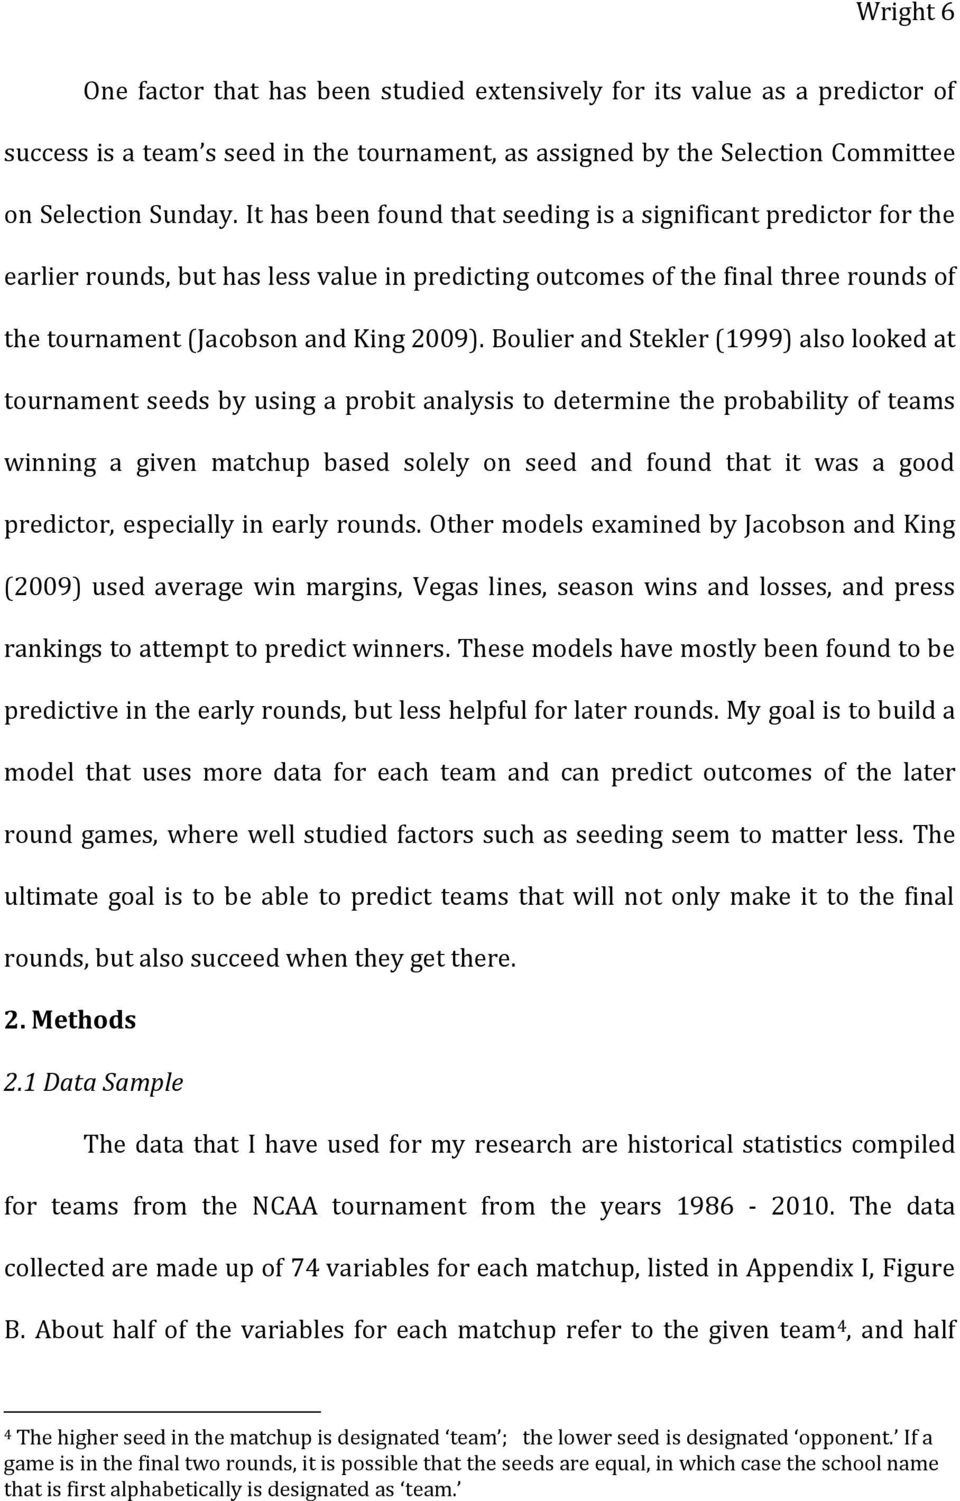 Boulier and Stekler (1999) also looked at tournament seeds by using a probit analysis to determine the probability of teams winning a given matchup based solely on seed and found that it was a good